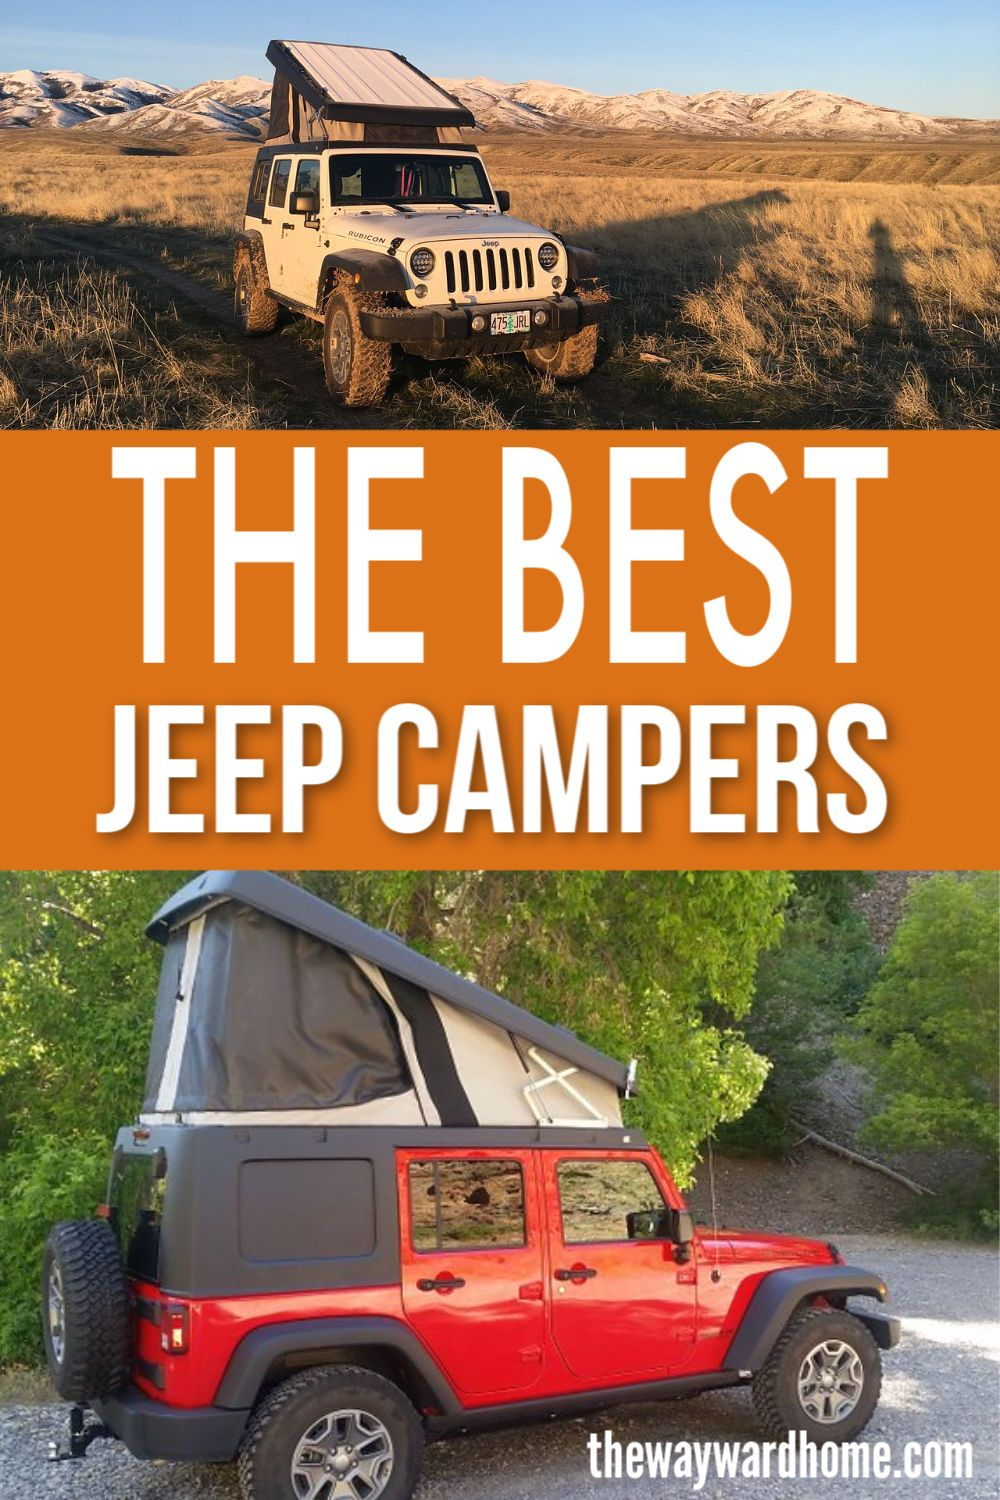 Jeep Camper A Rugged Off Grid Rig Jeep Camping Jeep Off Road